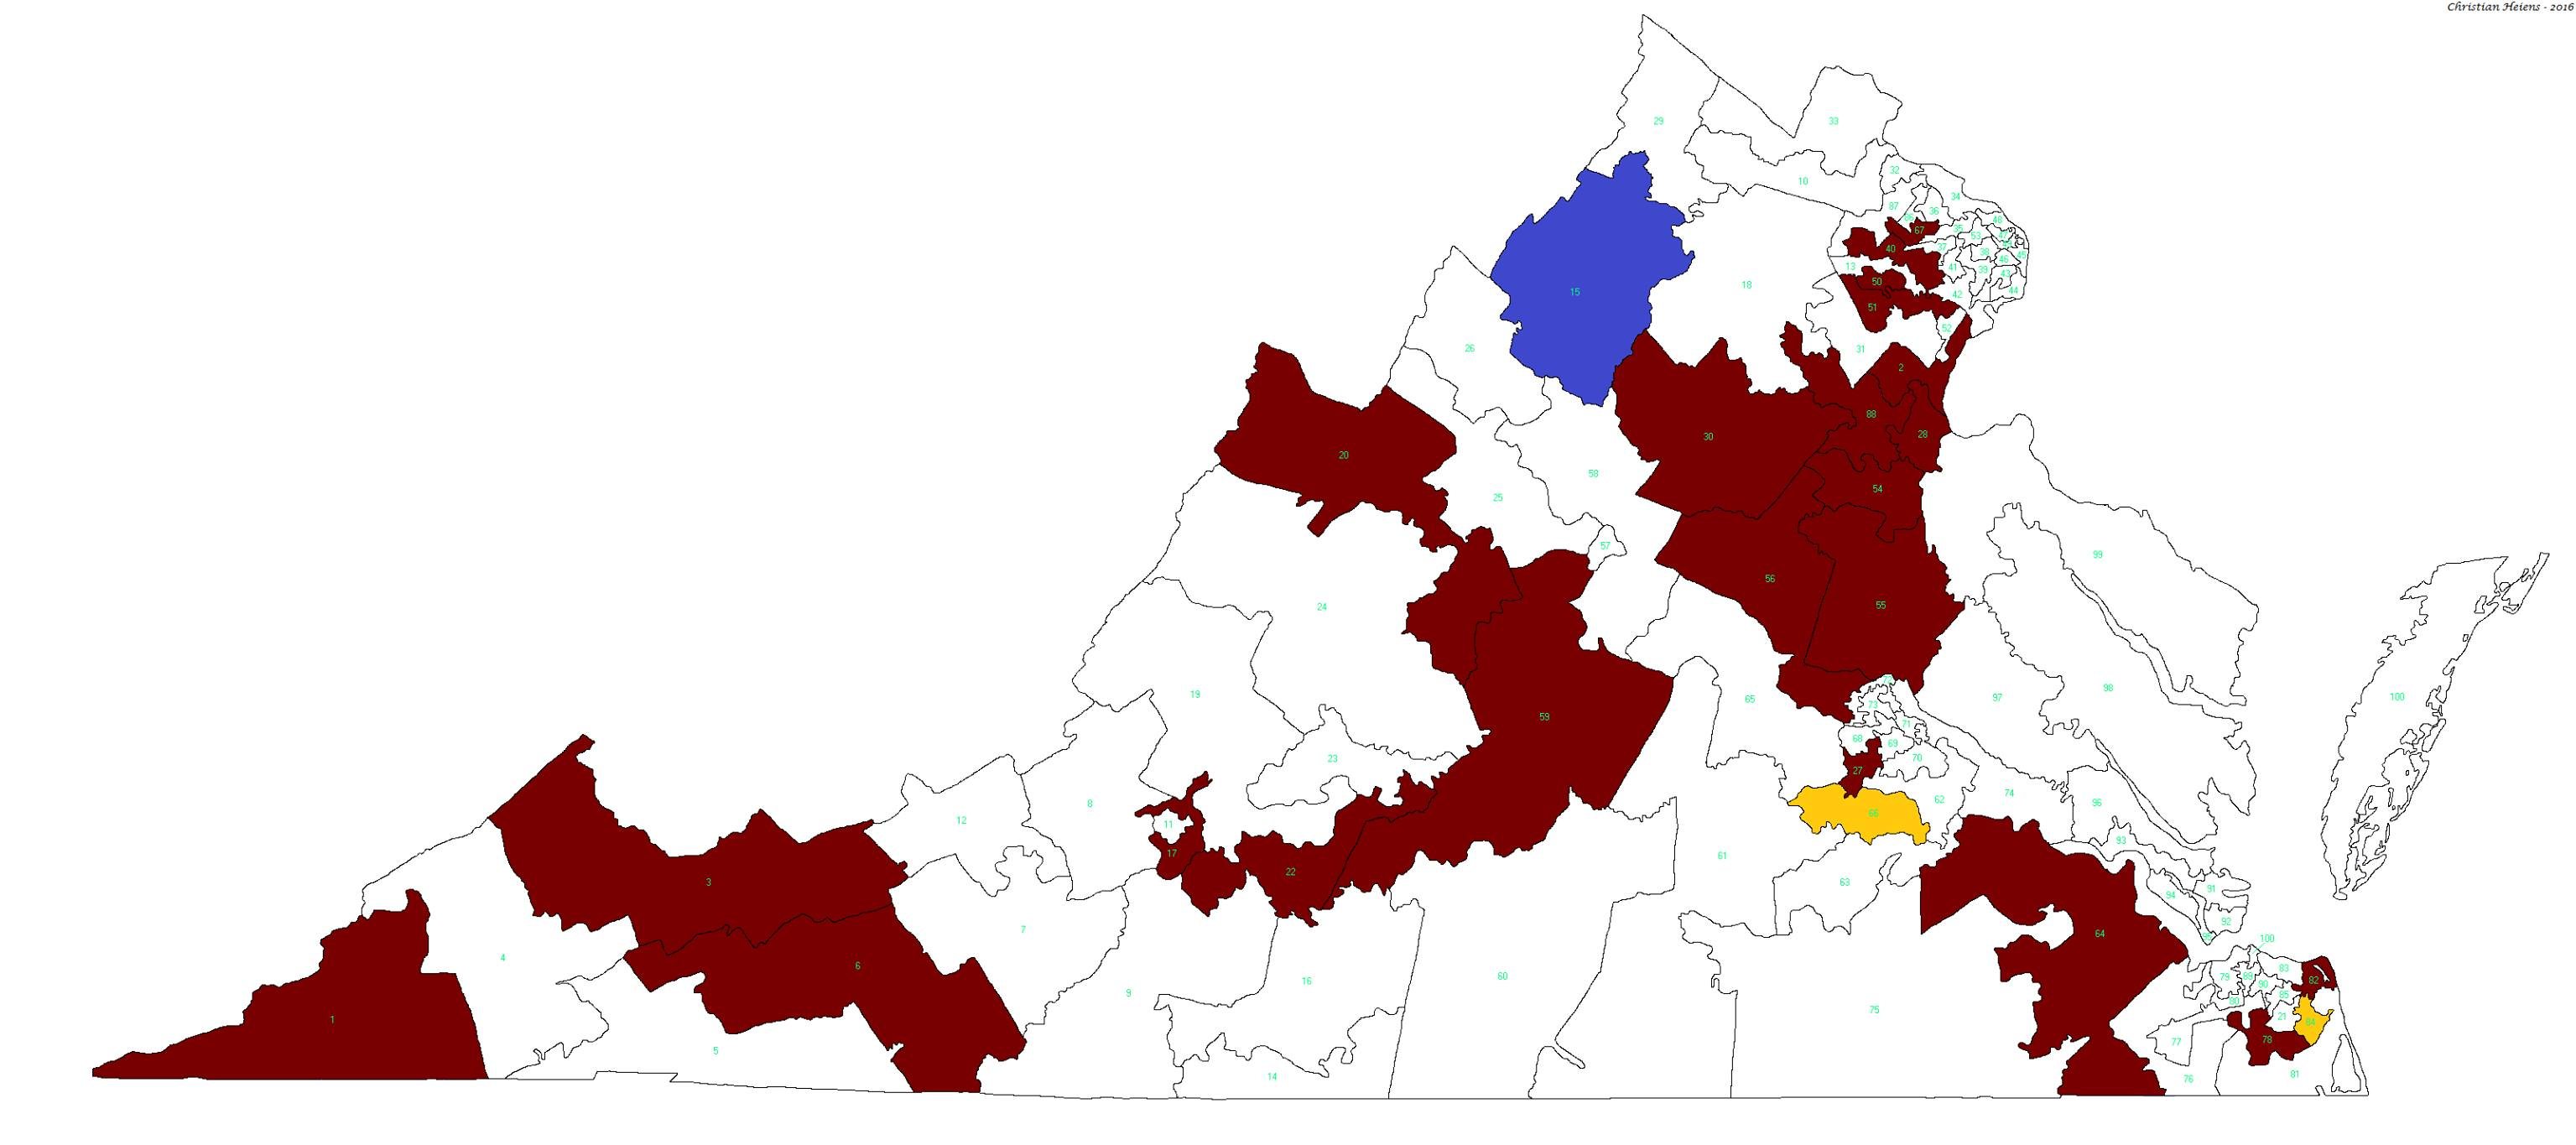 Delegate endorsement map